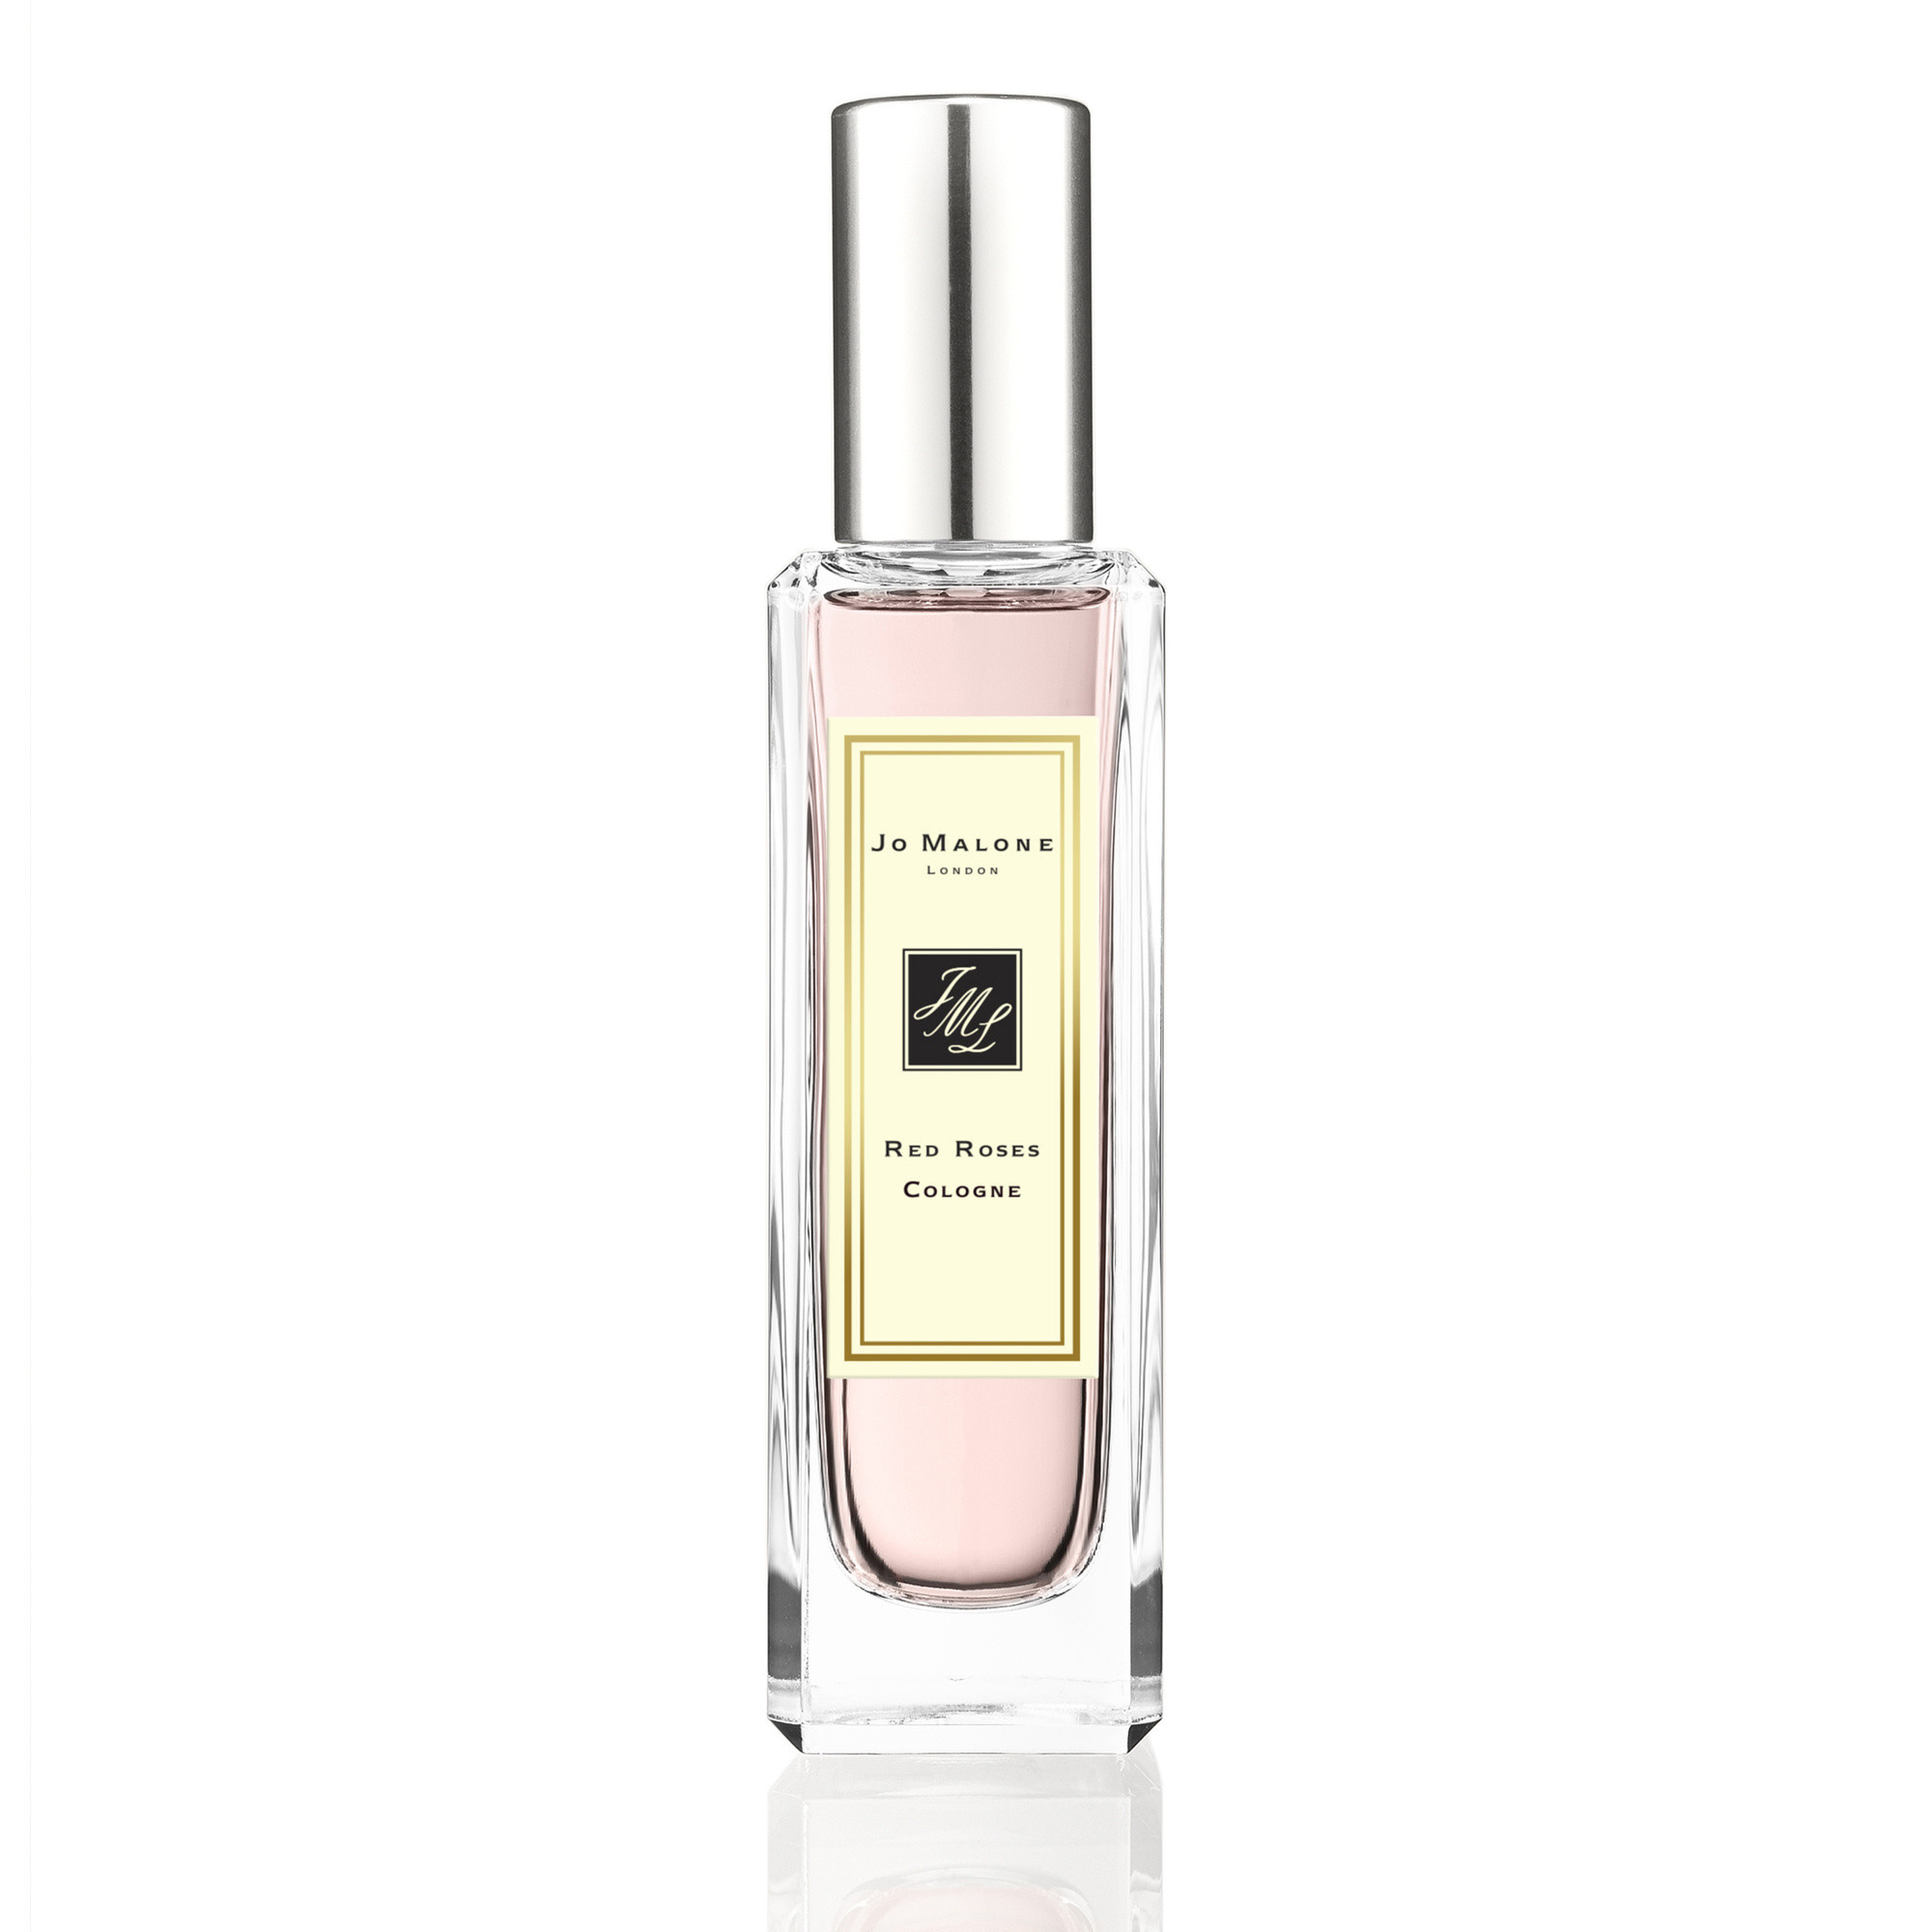 Jo Malone London red roses cologne 30 ml, Beige, large image number 0